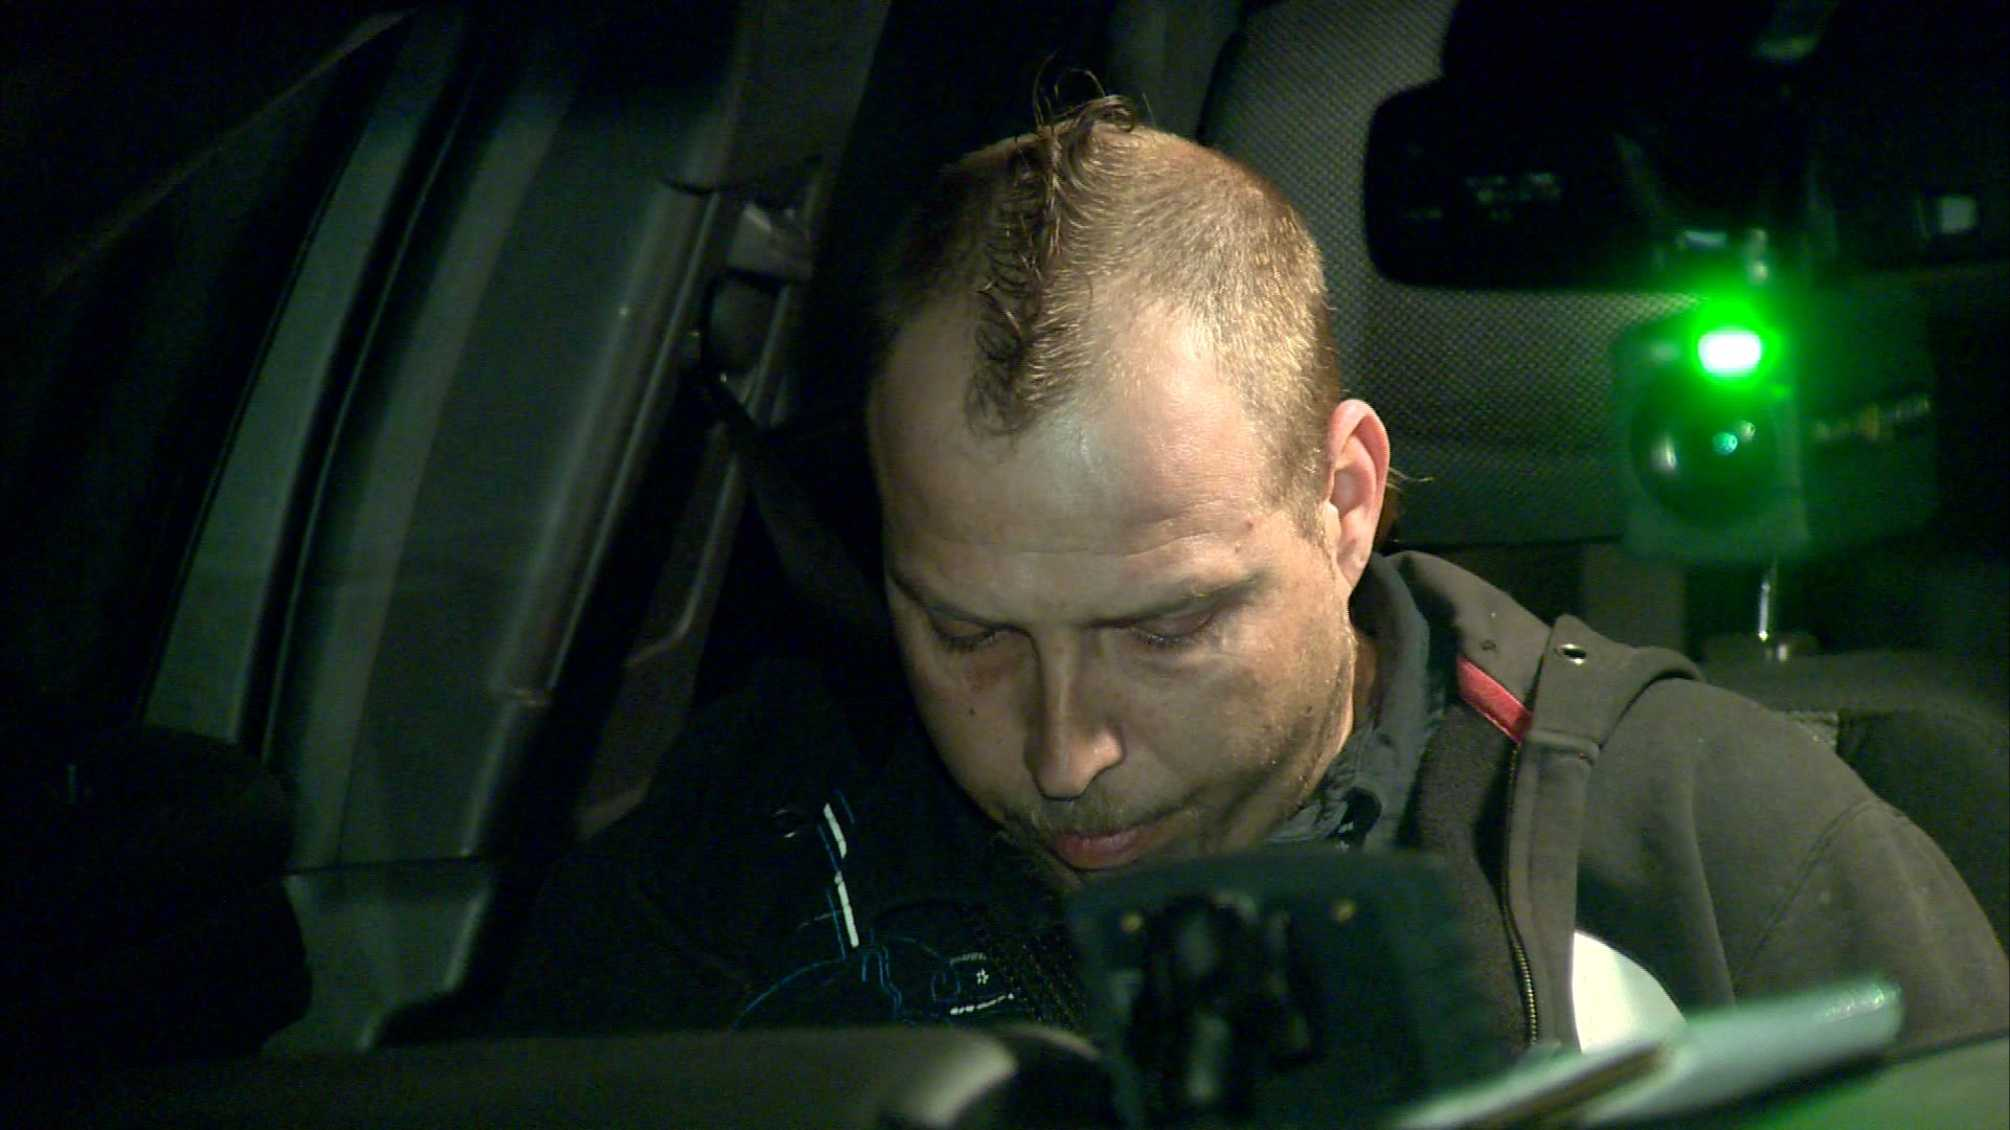 Police have arrested a man who they say backed his car into a 12-year-old girl on purpose in Ronco, Fayette County.